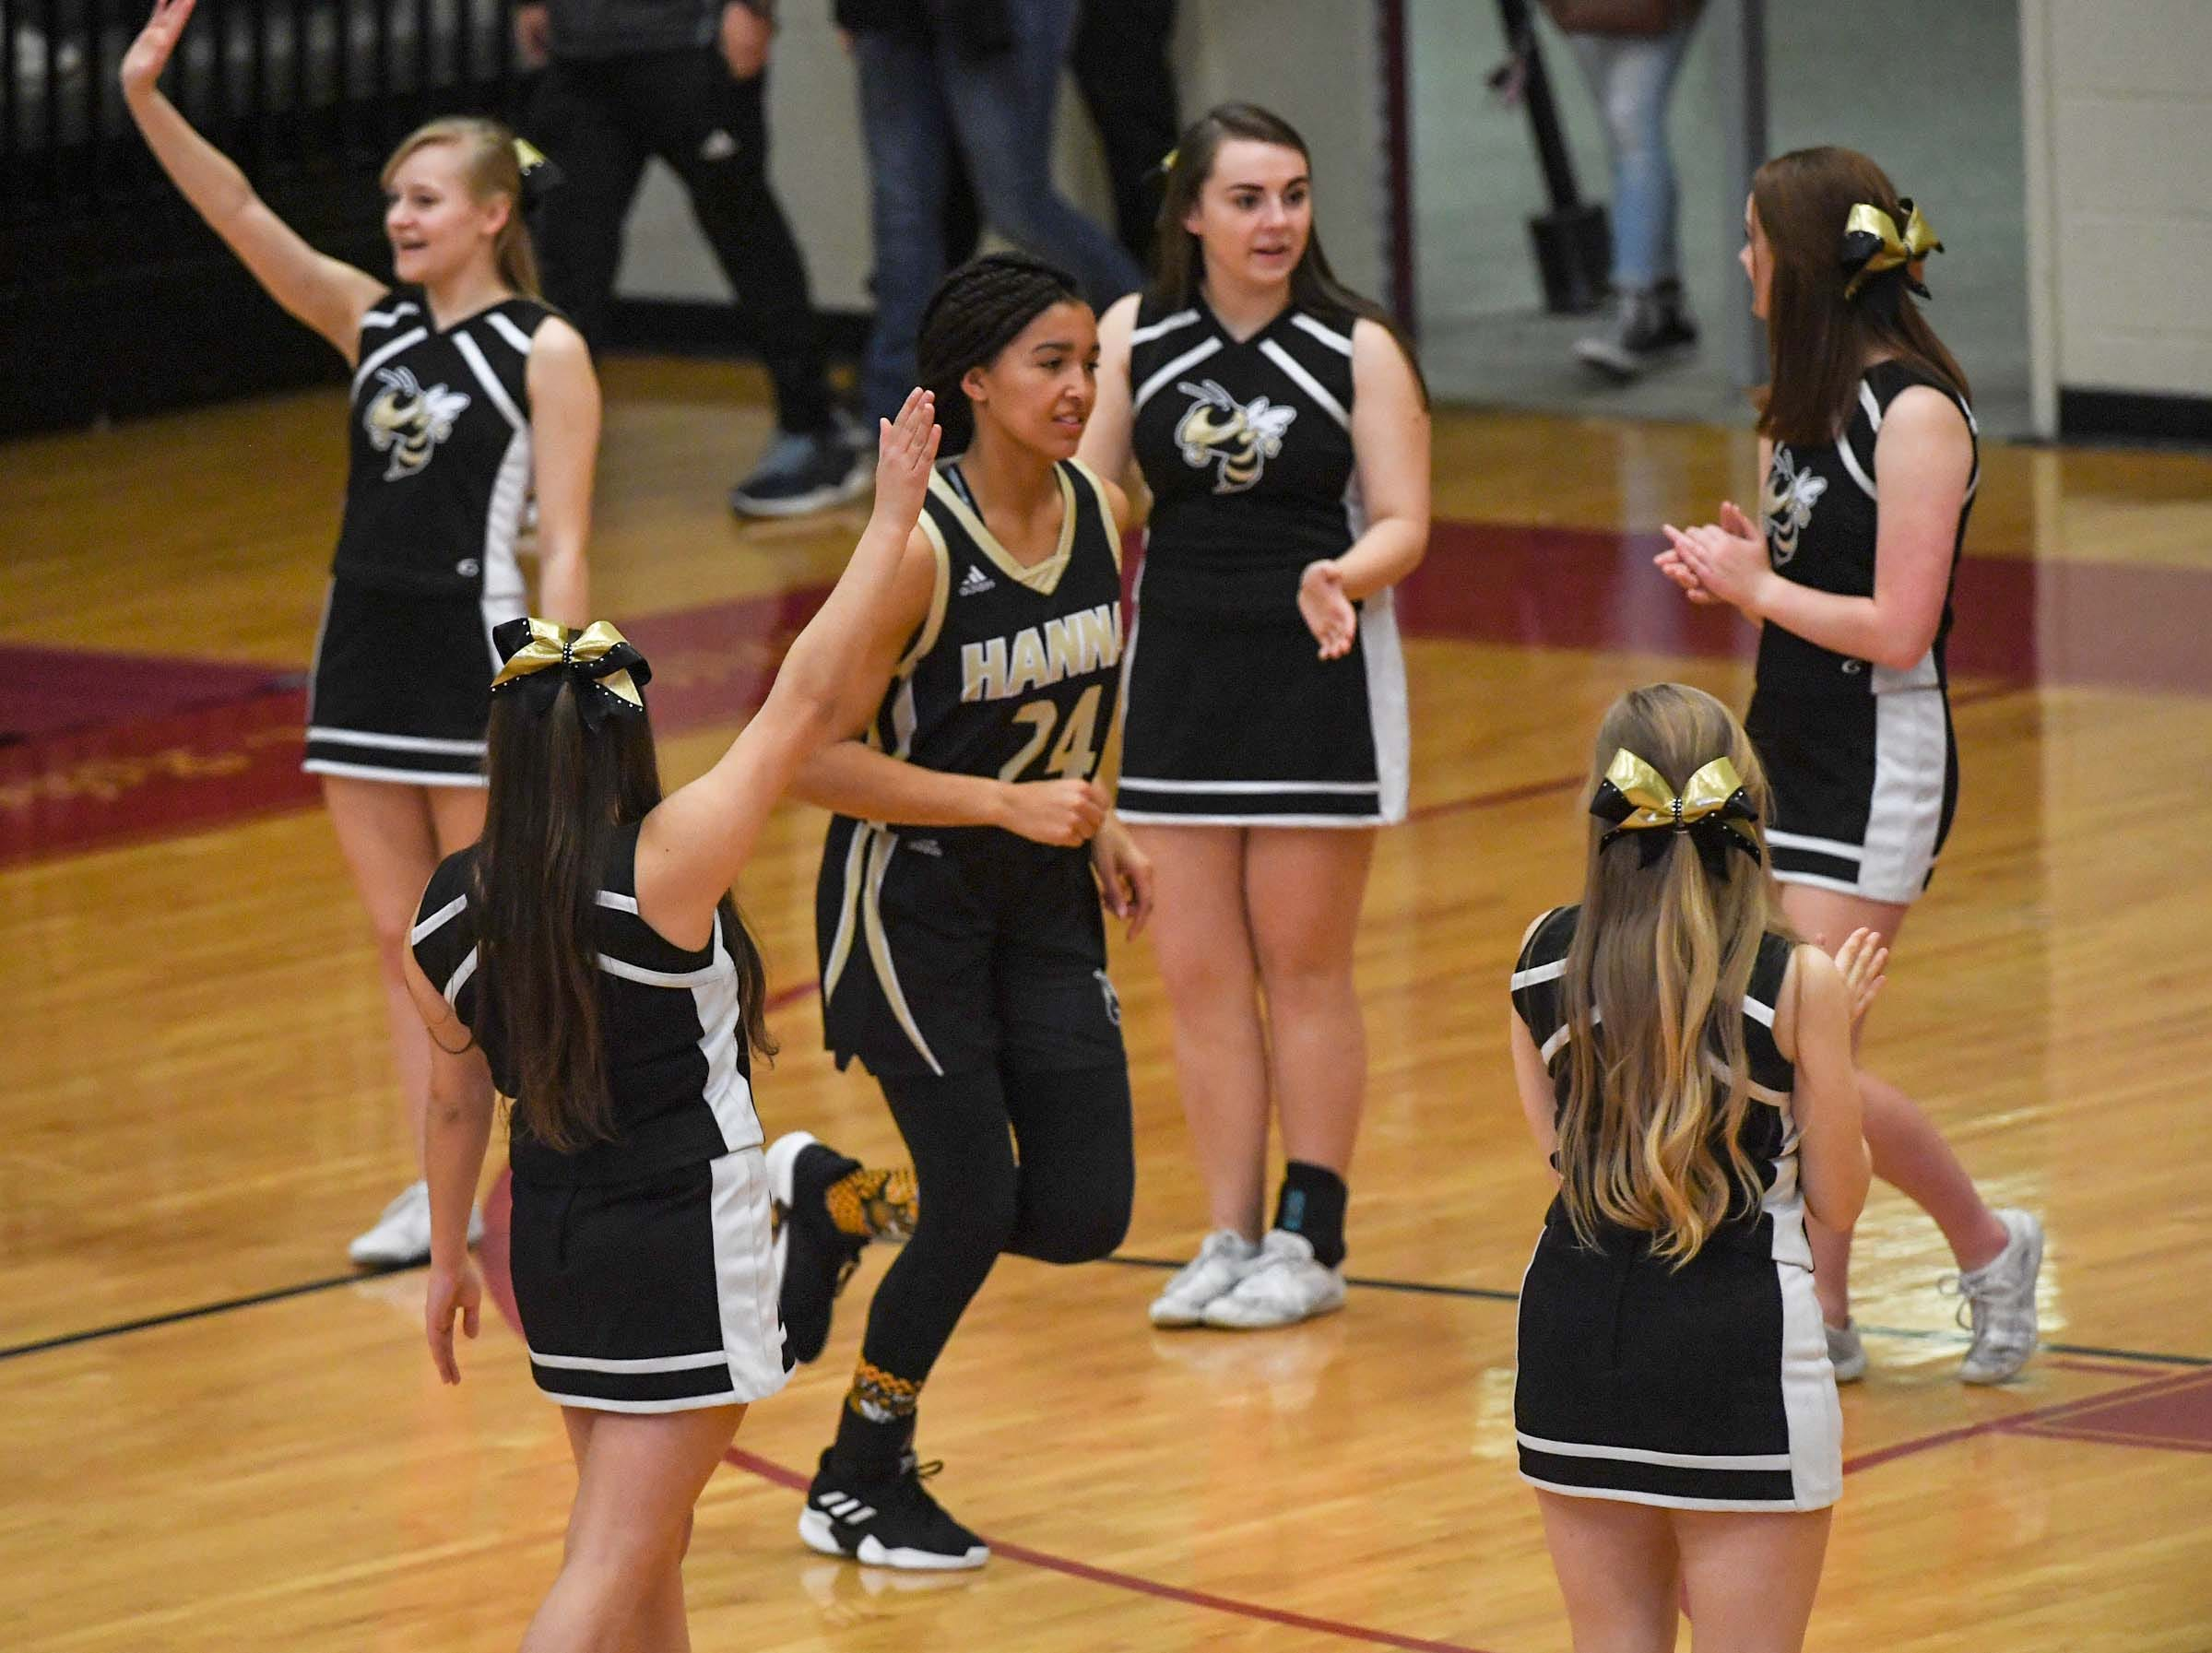 TL Hanna junior Maleia Bracone(24) is introduced before the first quarter at Westside High School in Anderson on Friday.